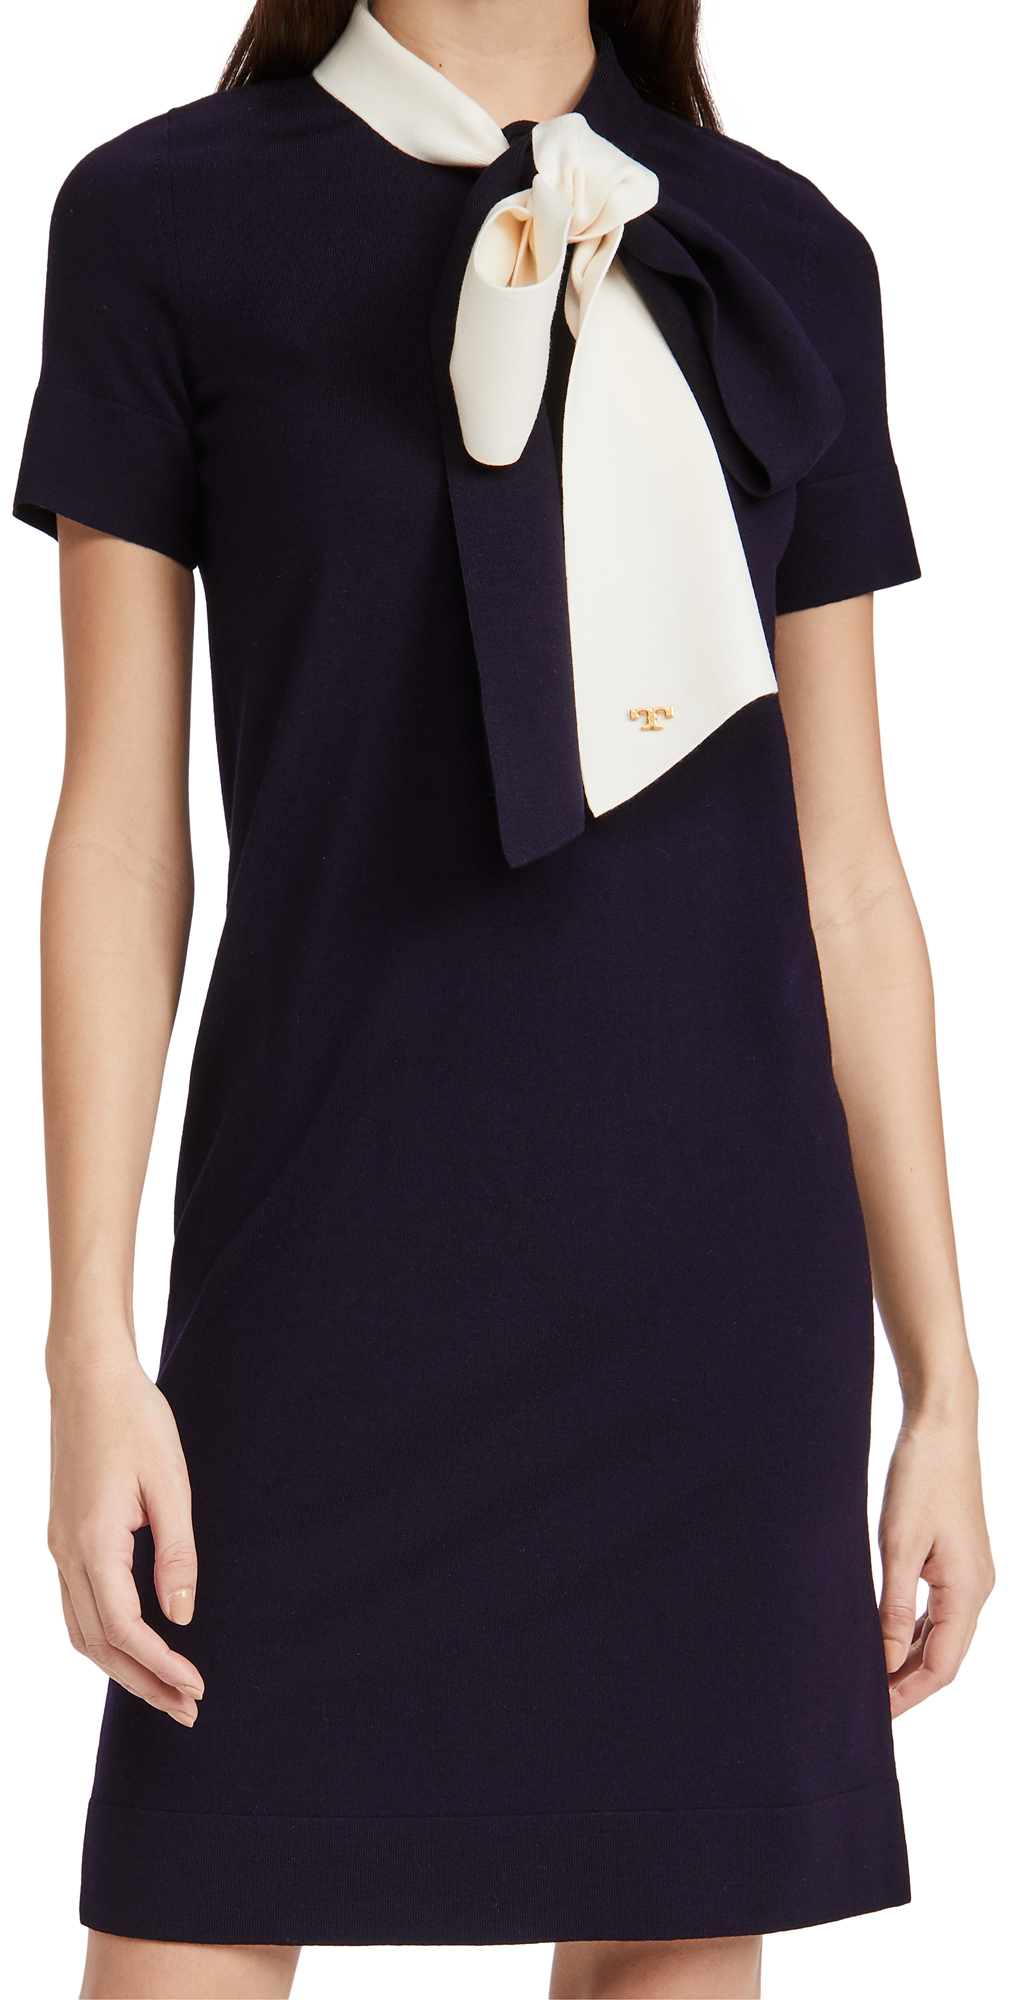 Tory Burch Short Sleeve Bow Sweater Dress